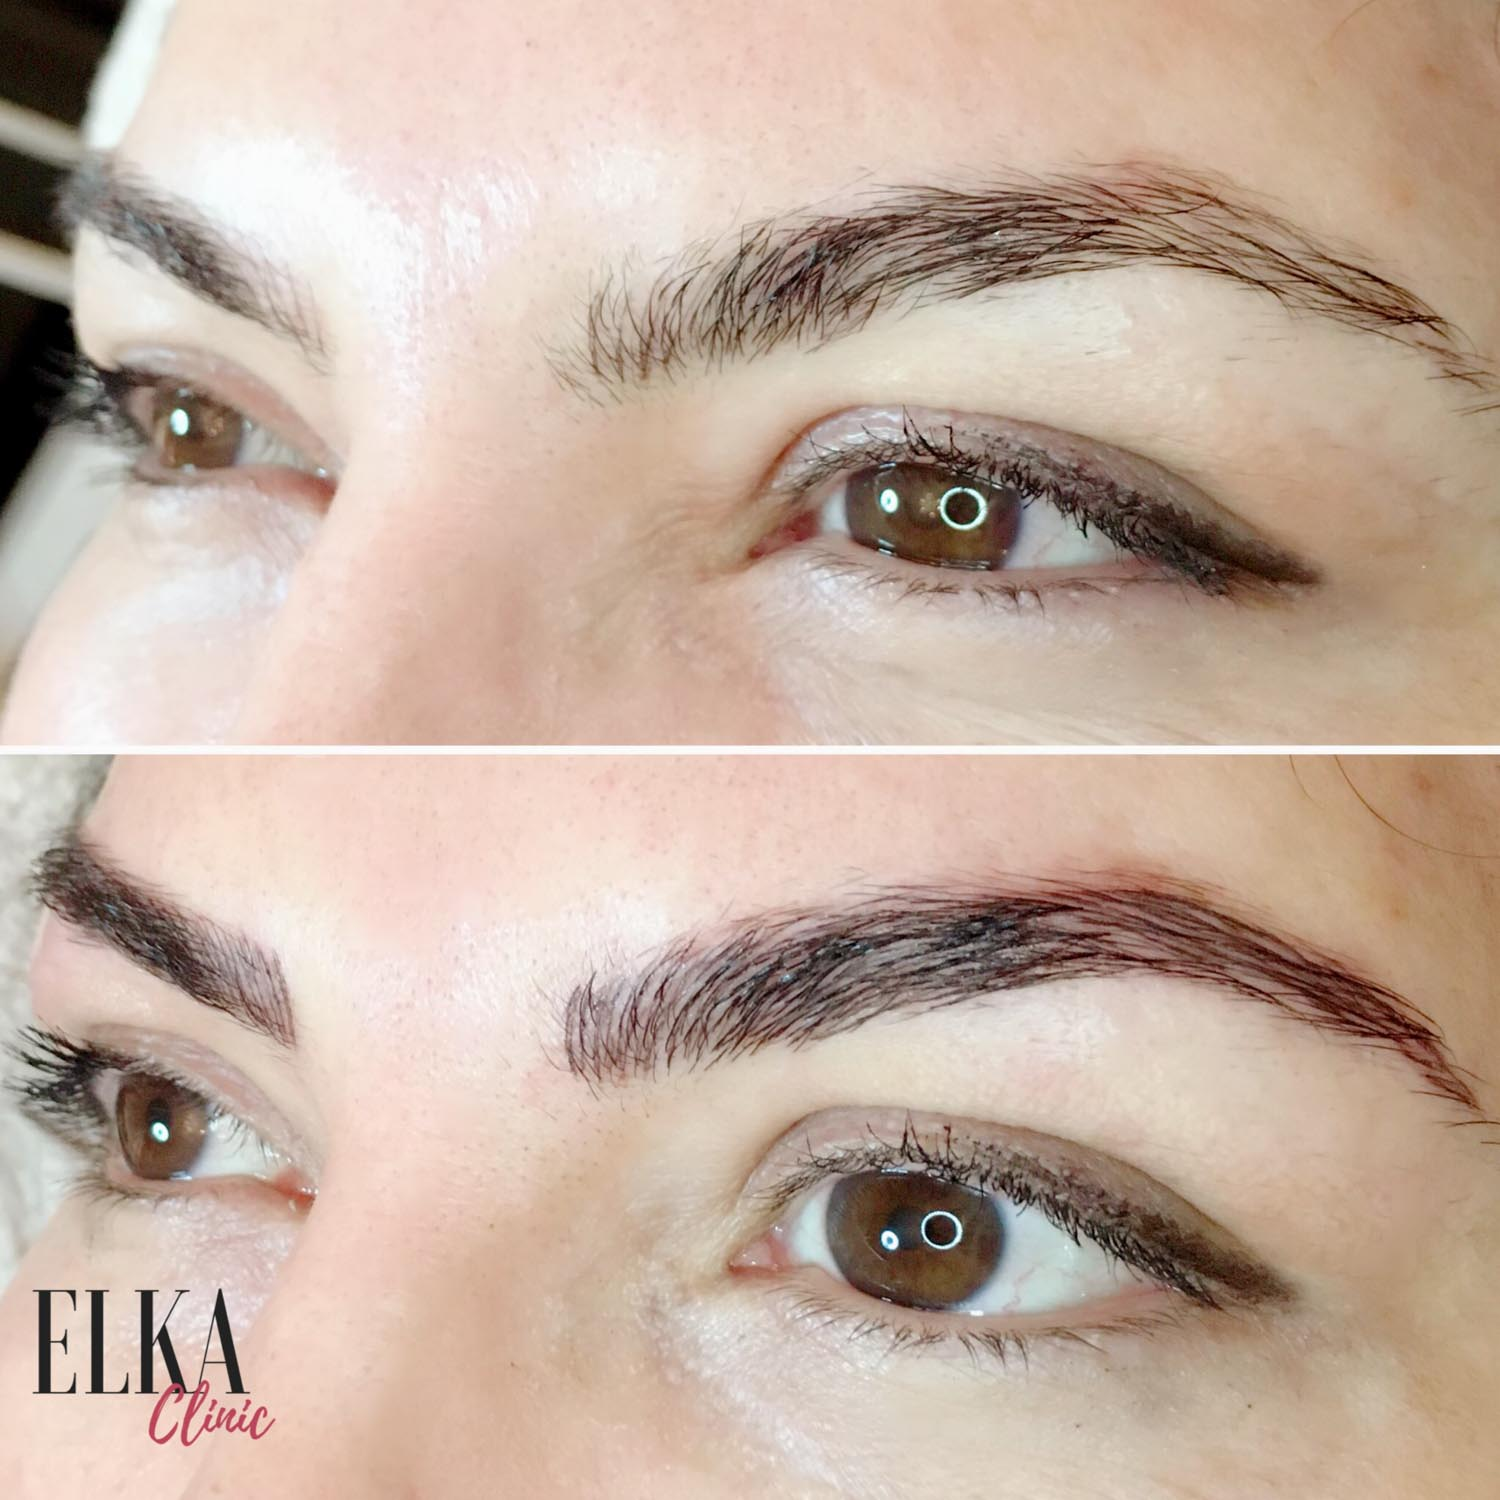 eyebrow tattoo & touch up